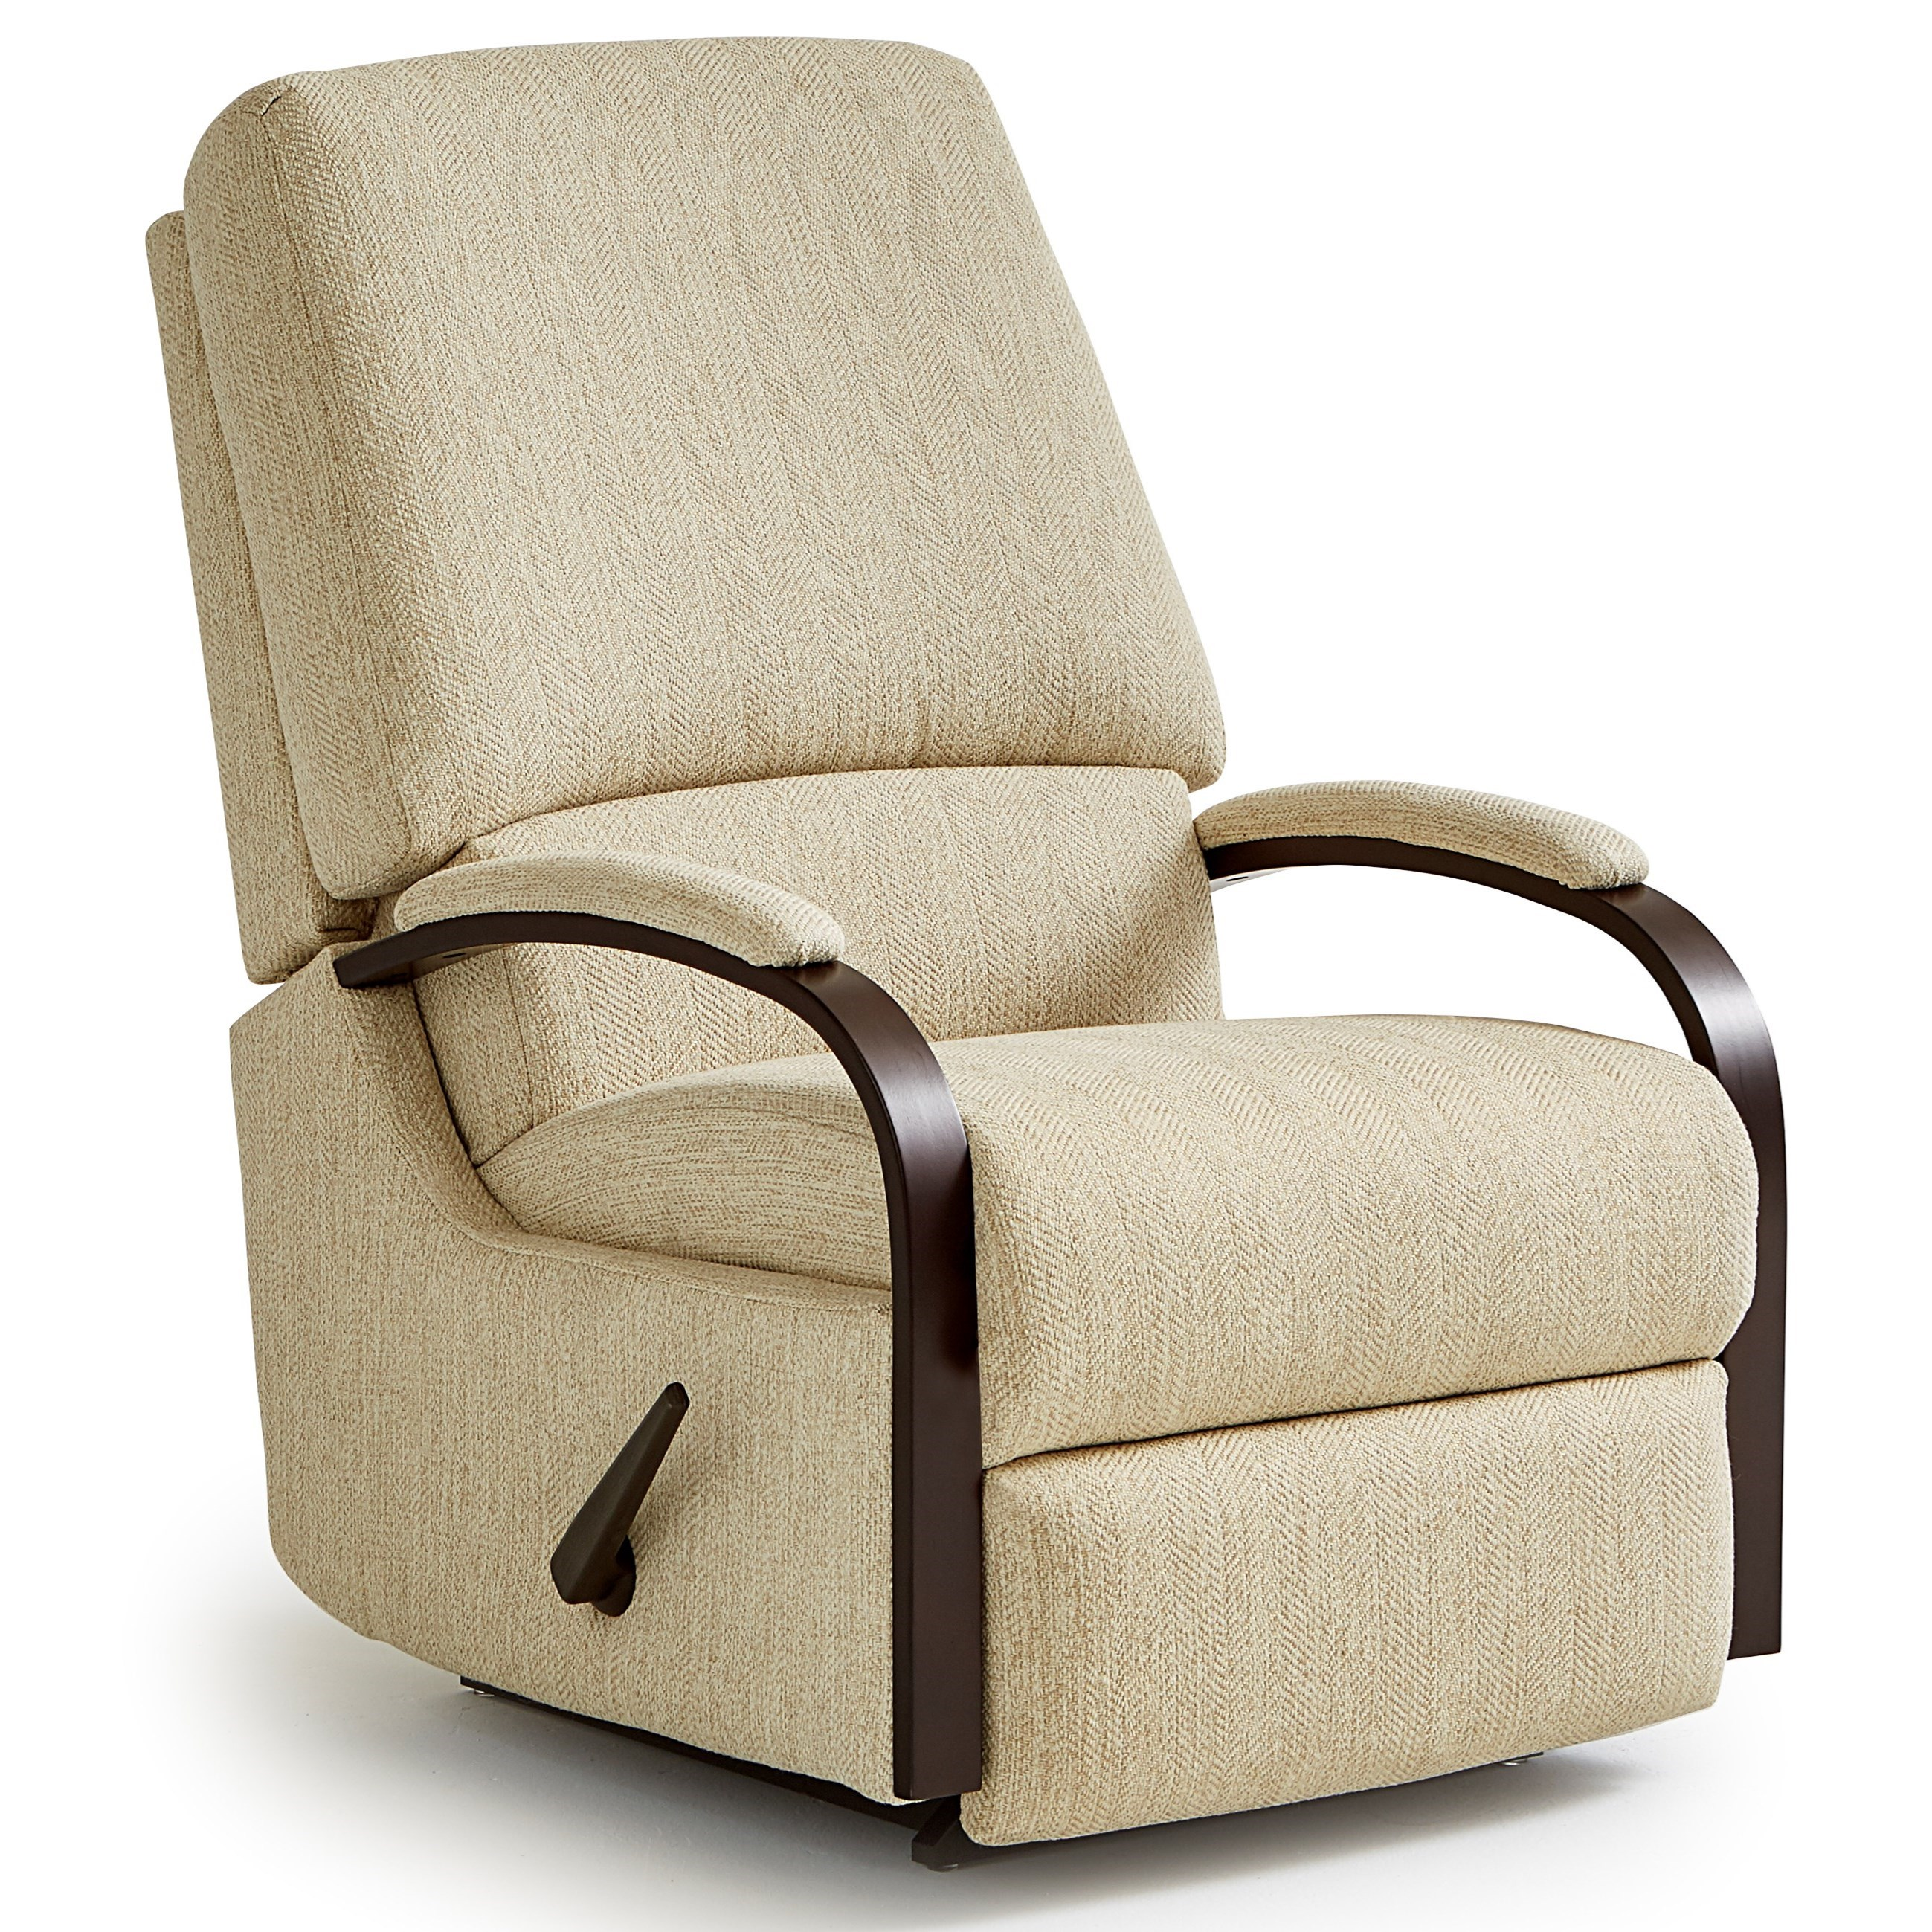 Best Home Furnishings Recliners - Medium Pike Wallhugger Recliner - Item Number: 7NW04